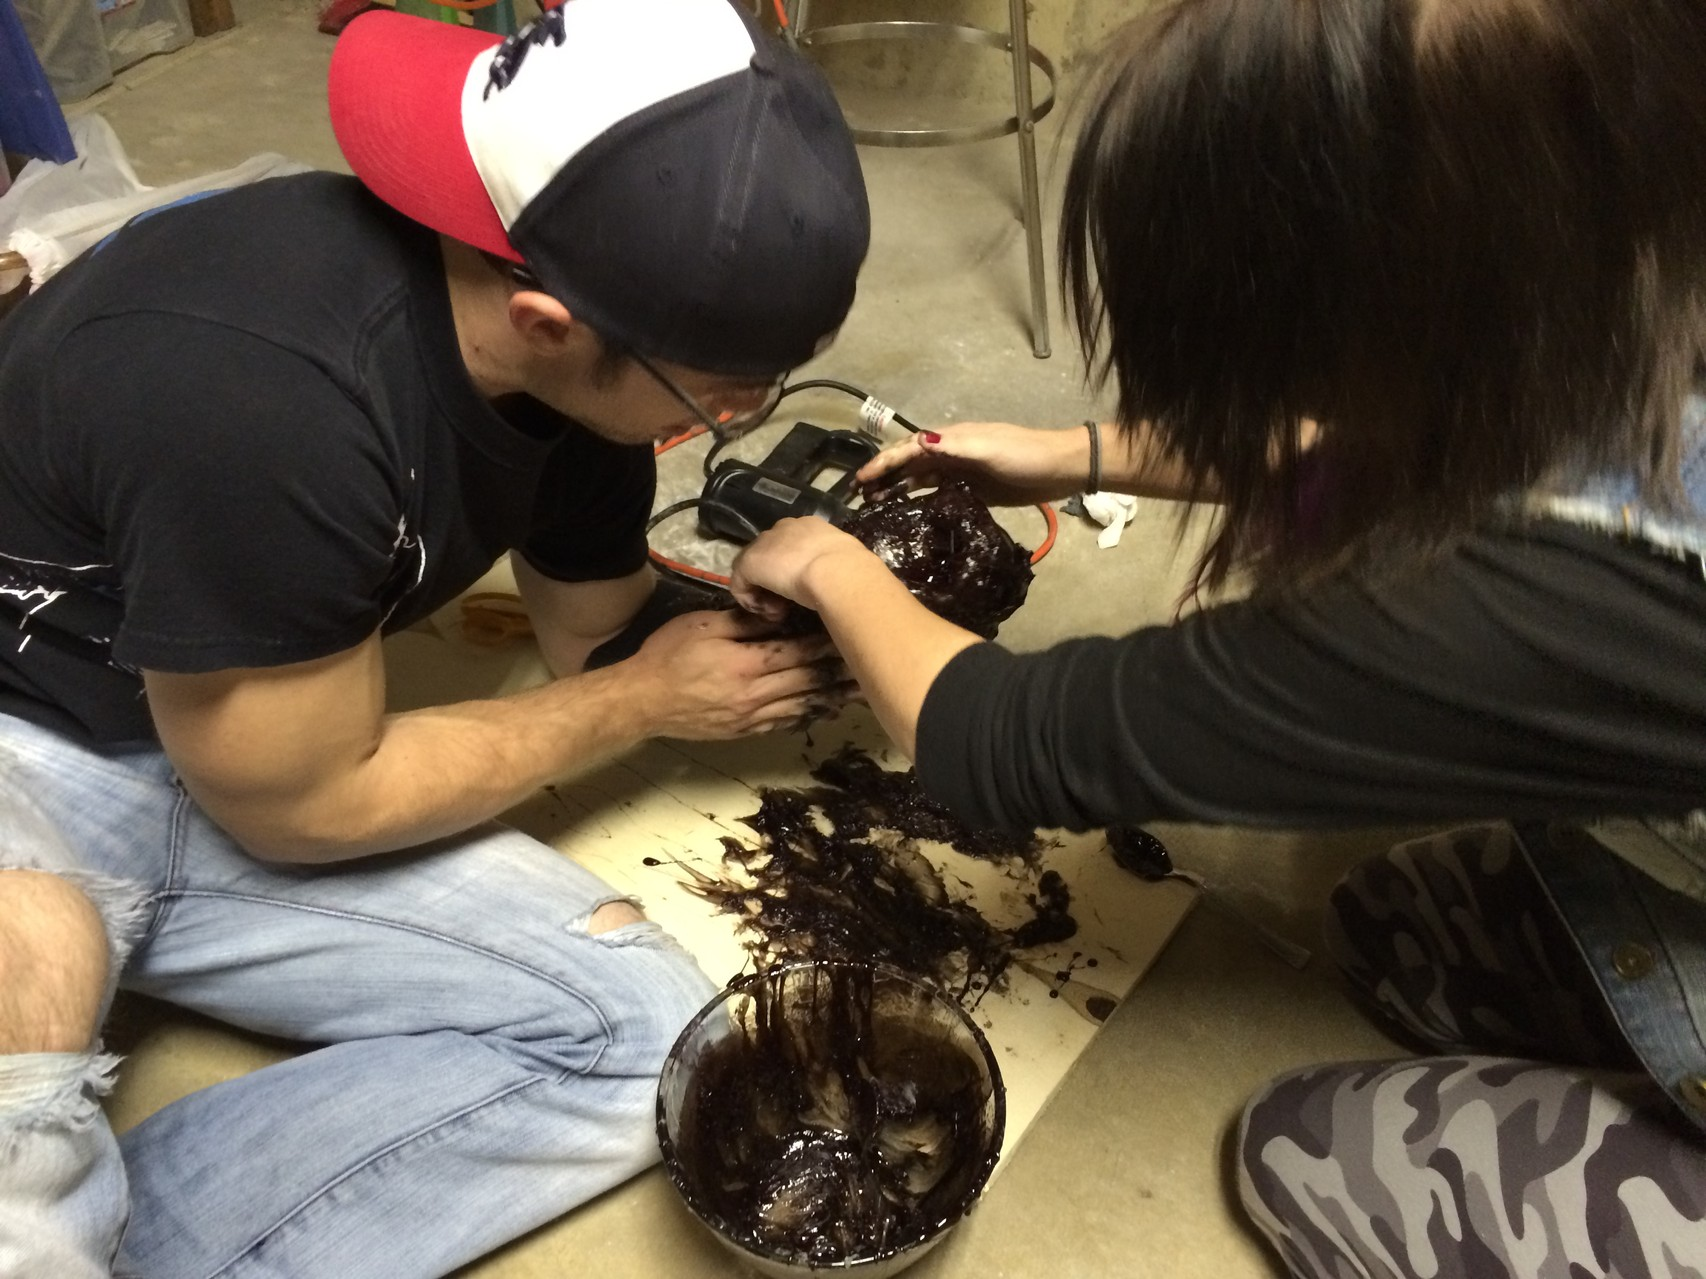 FX Supervisor Jason Kain and Rhiann Owen work on creating The Muck.